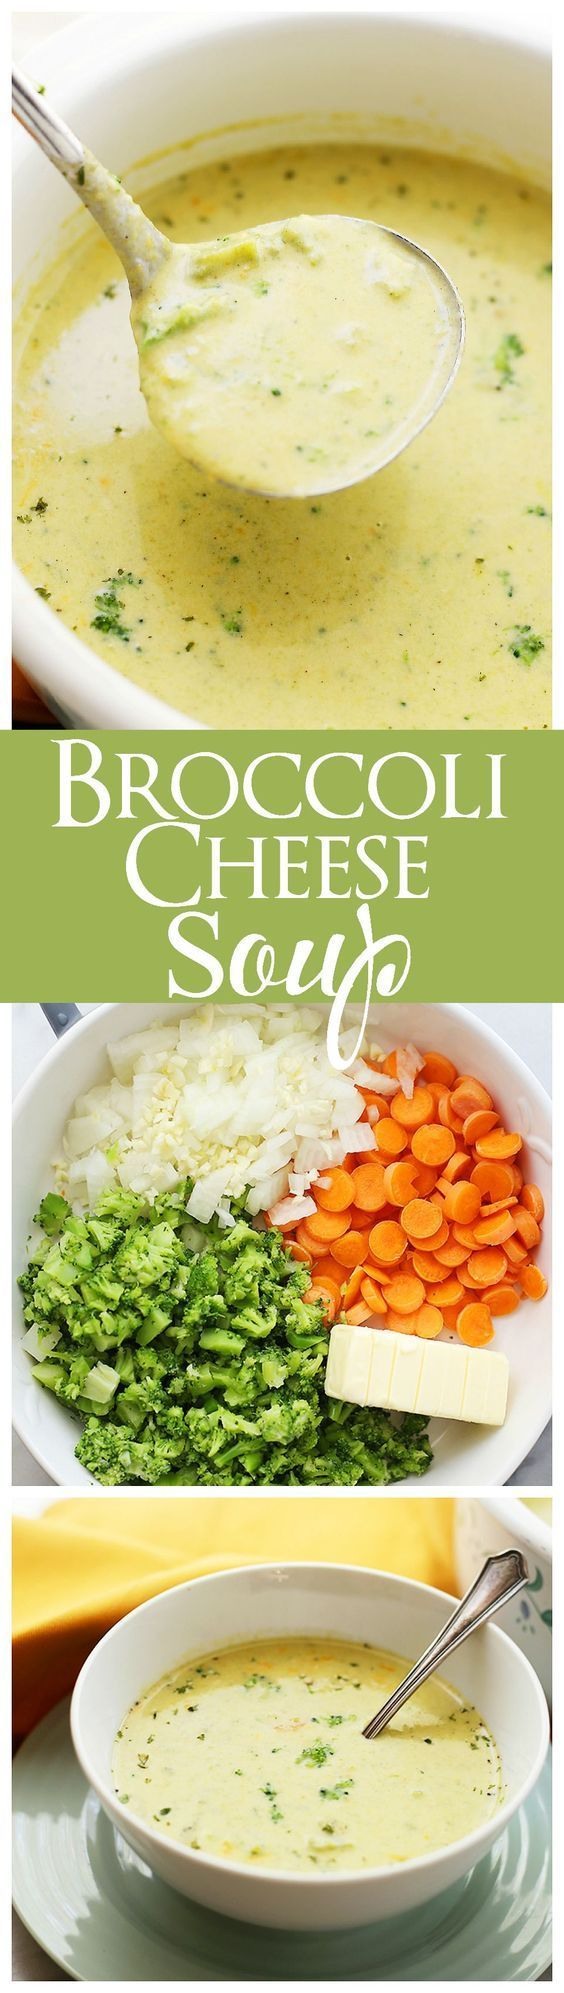 Broccoli Cheese Soup (Panera Copycat) | www.diethood.com | If you love Panera Bread's Broccoli Cheese Soup, you are going to be amazed with this copycat recipe! | https://lomejordelaweb.es/